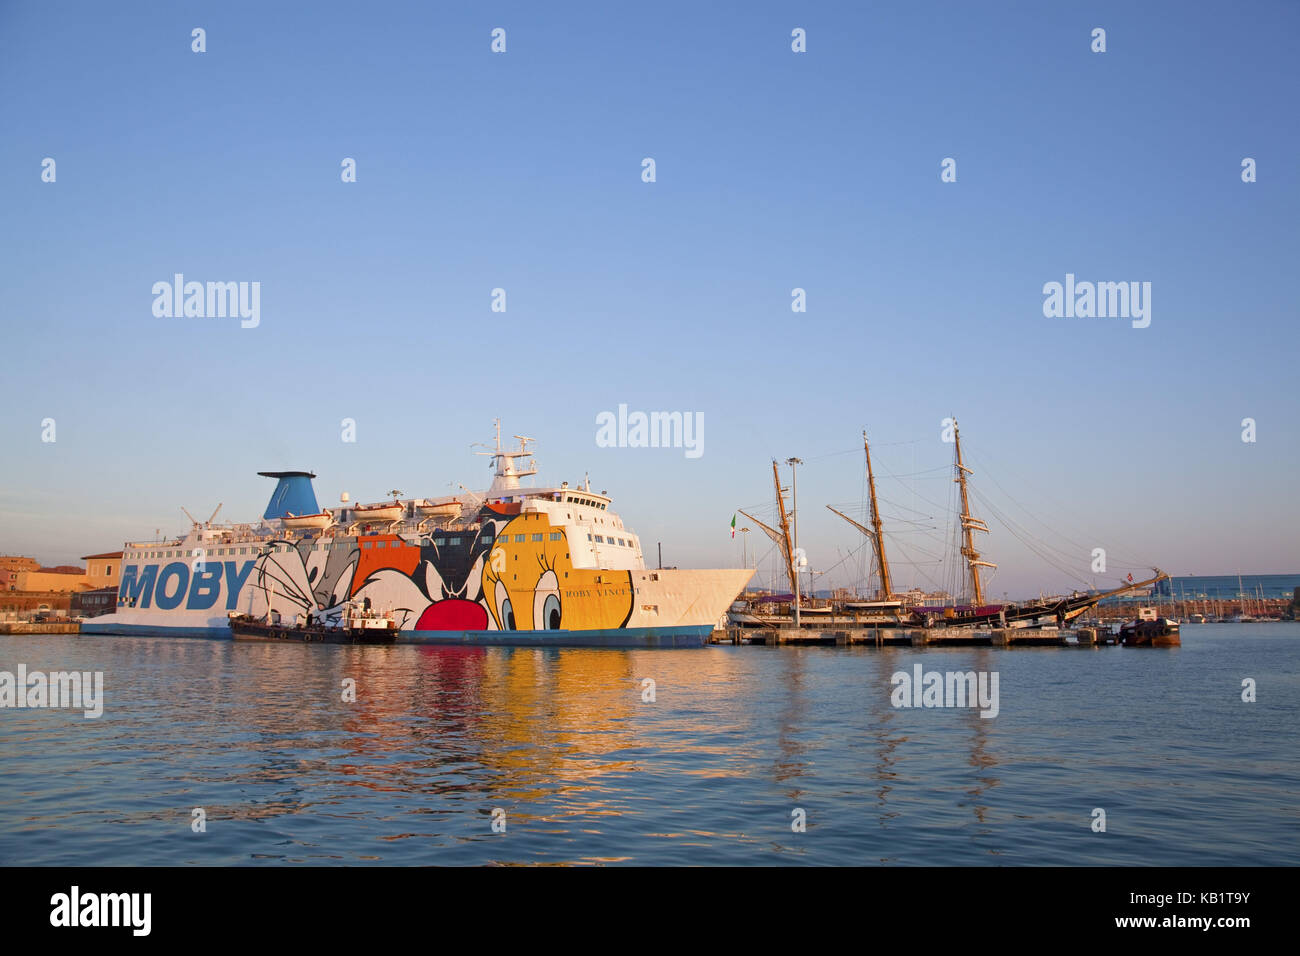 Livorno Olbia Ferry Moby Lines Stock Photos And Moby Lines Stock Images Alamy